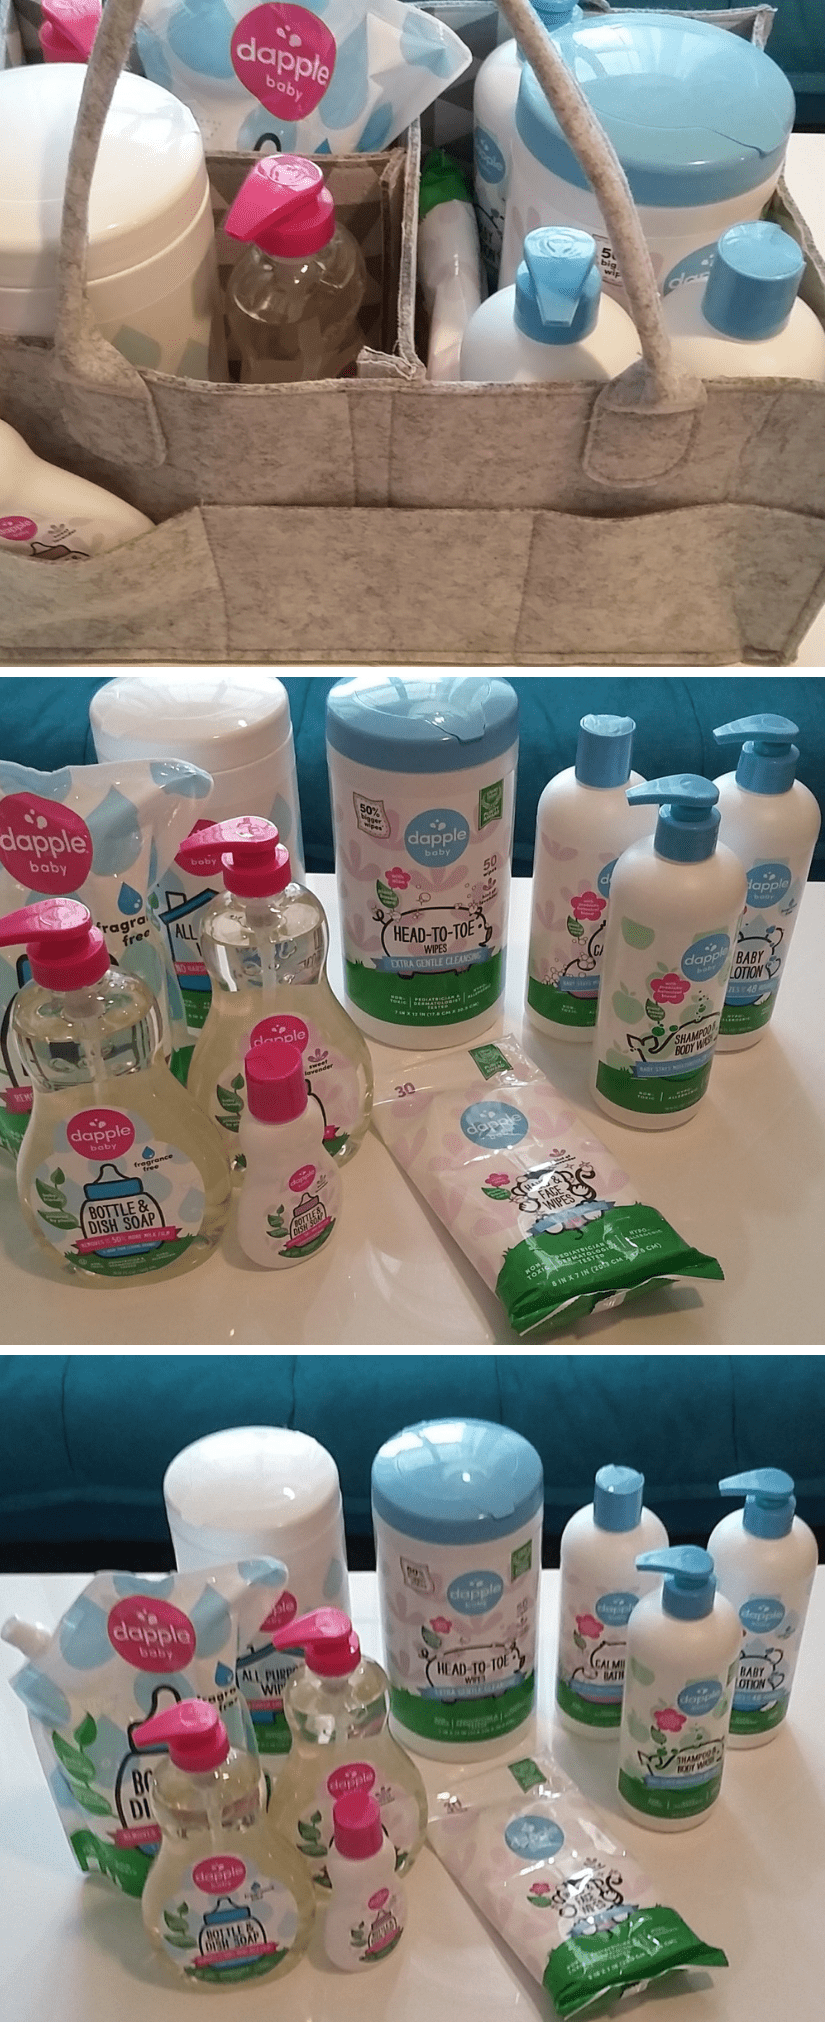 Dapple Baby Plant-Based Household and Personal Care